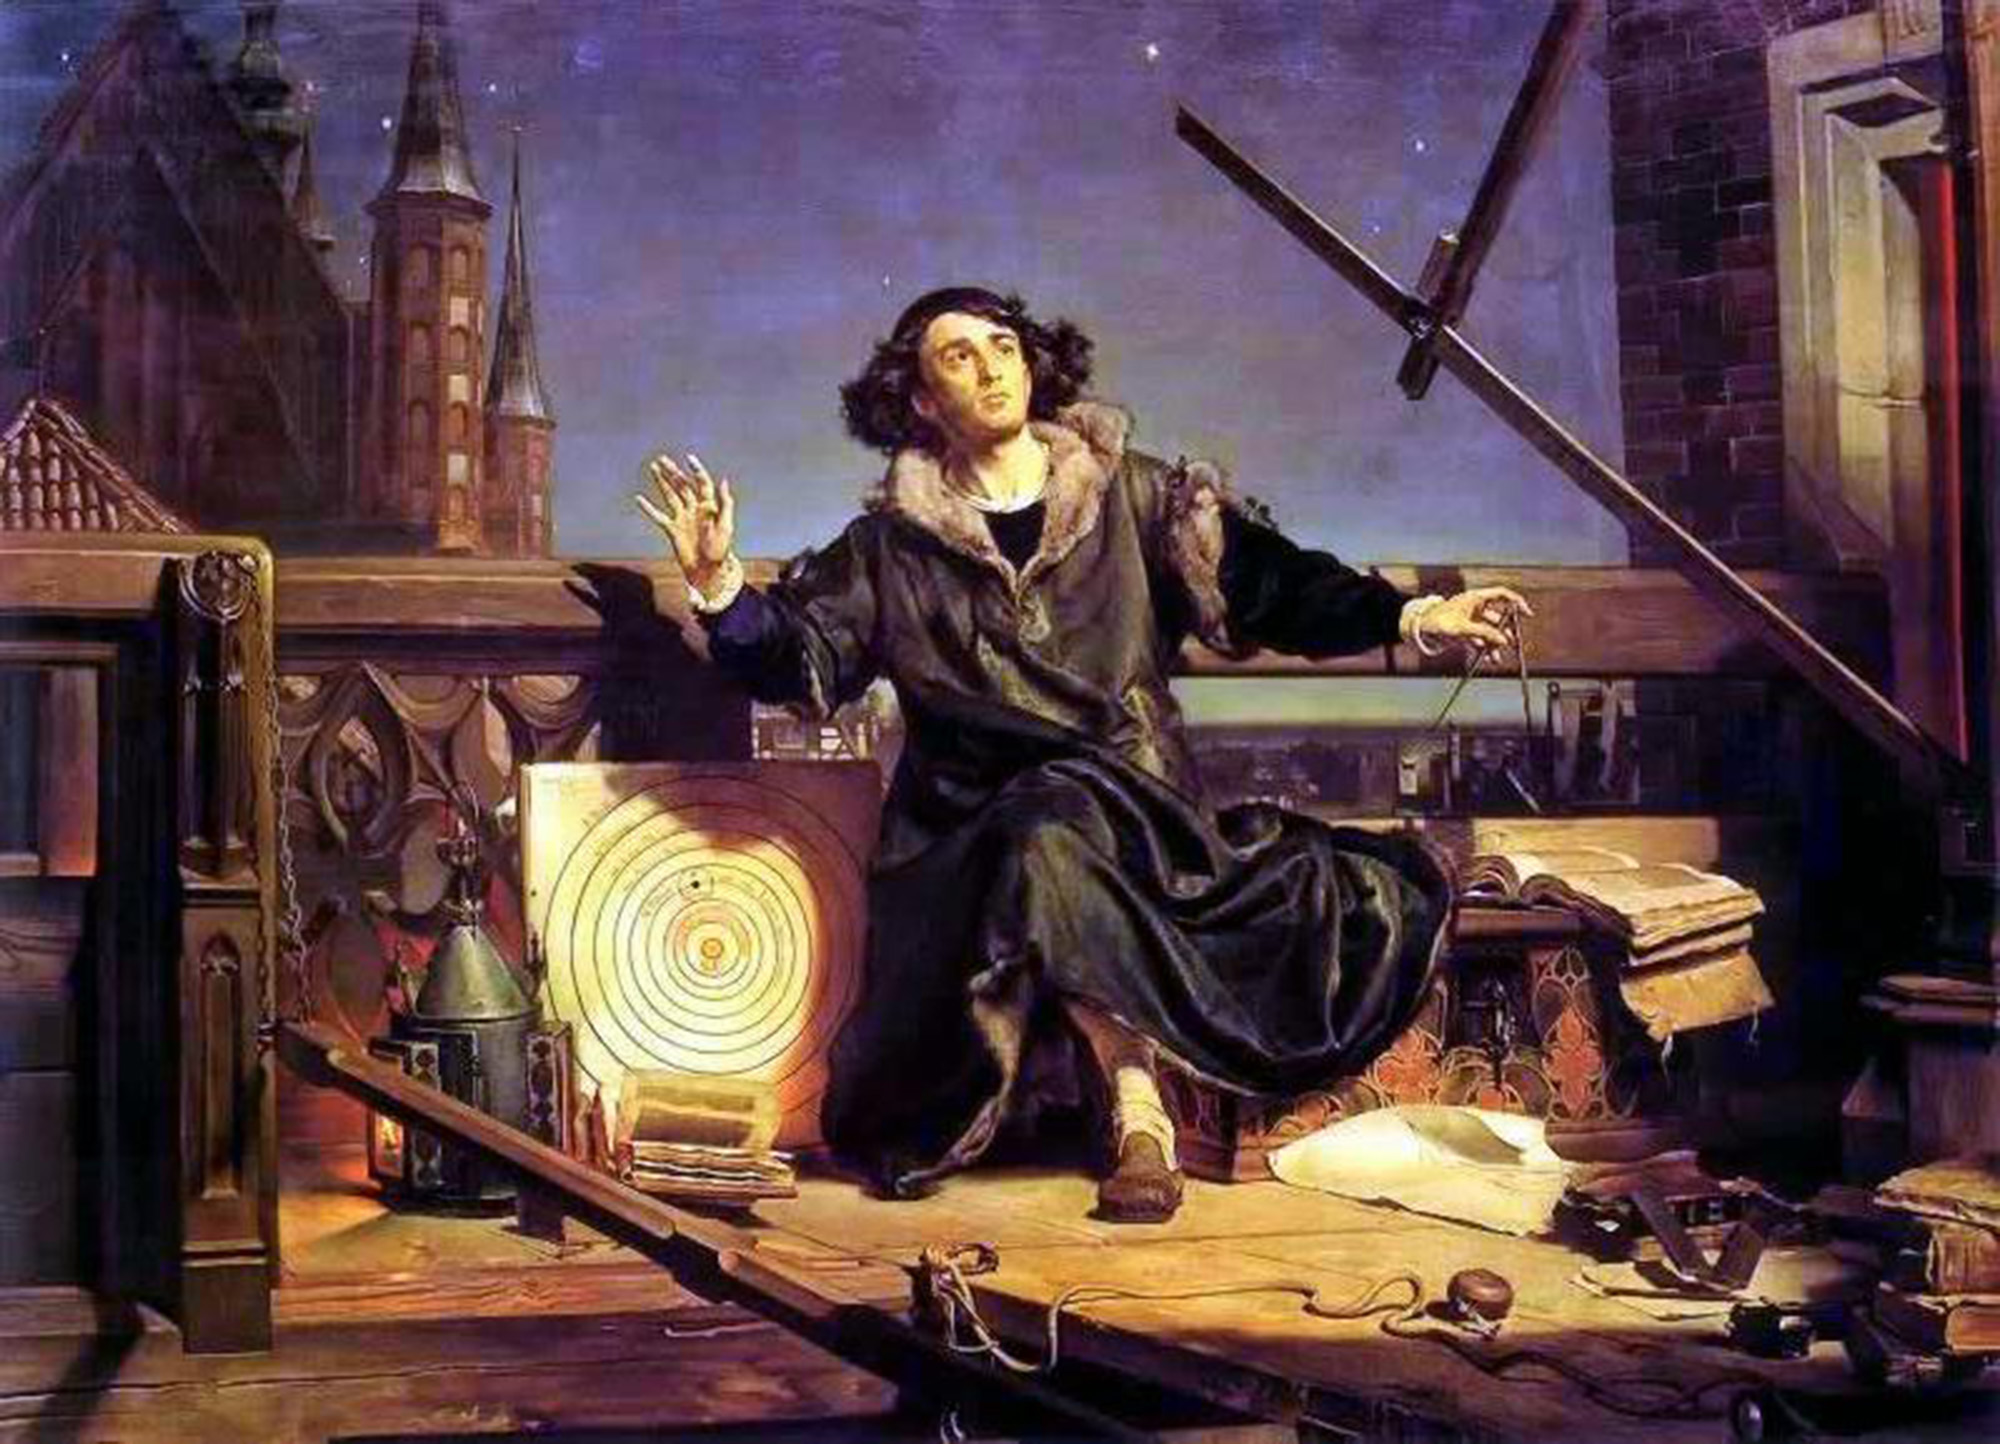 Astronomer Copernicus, or Conversations with God.  Jan Matejko, 1873